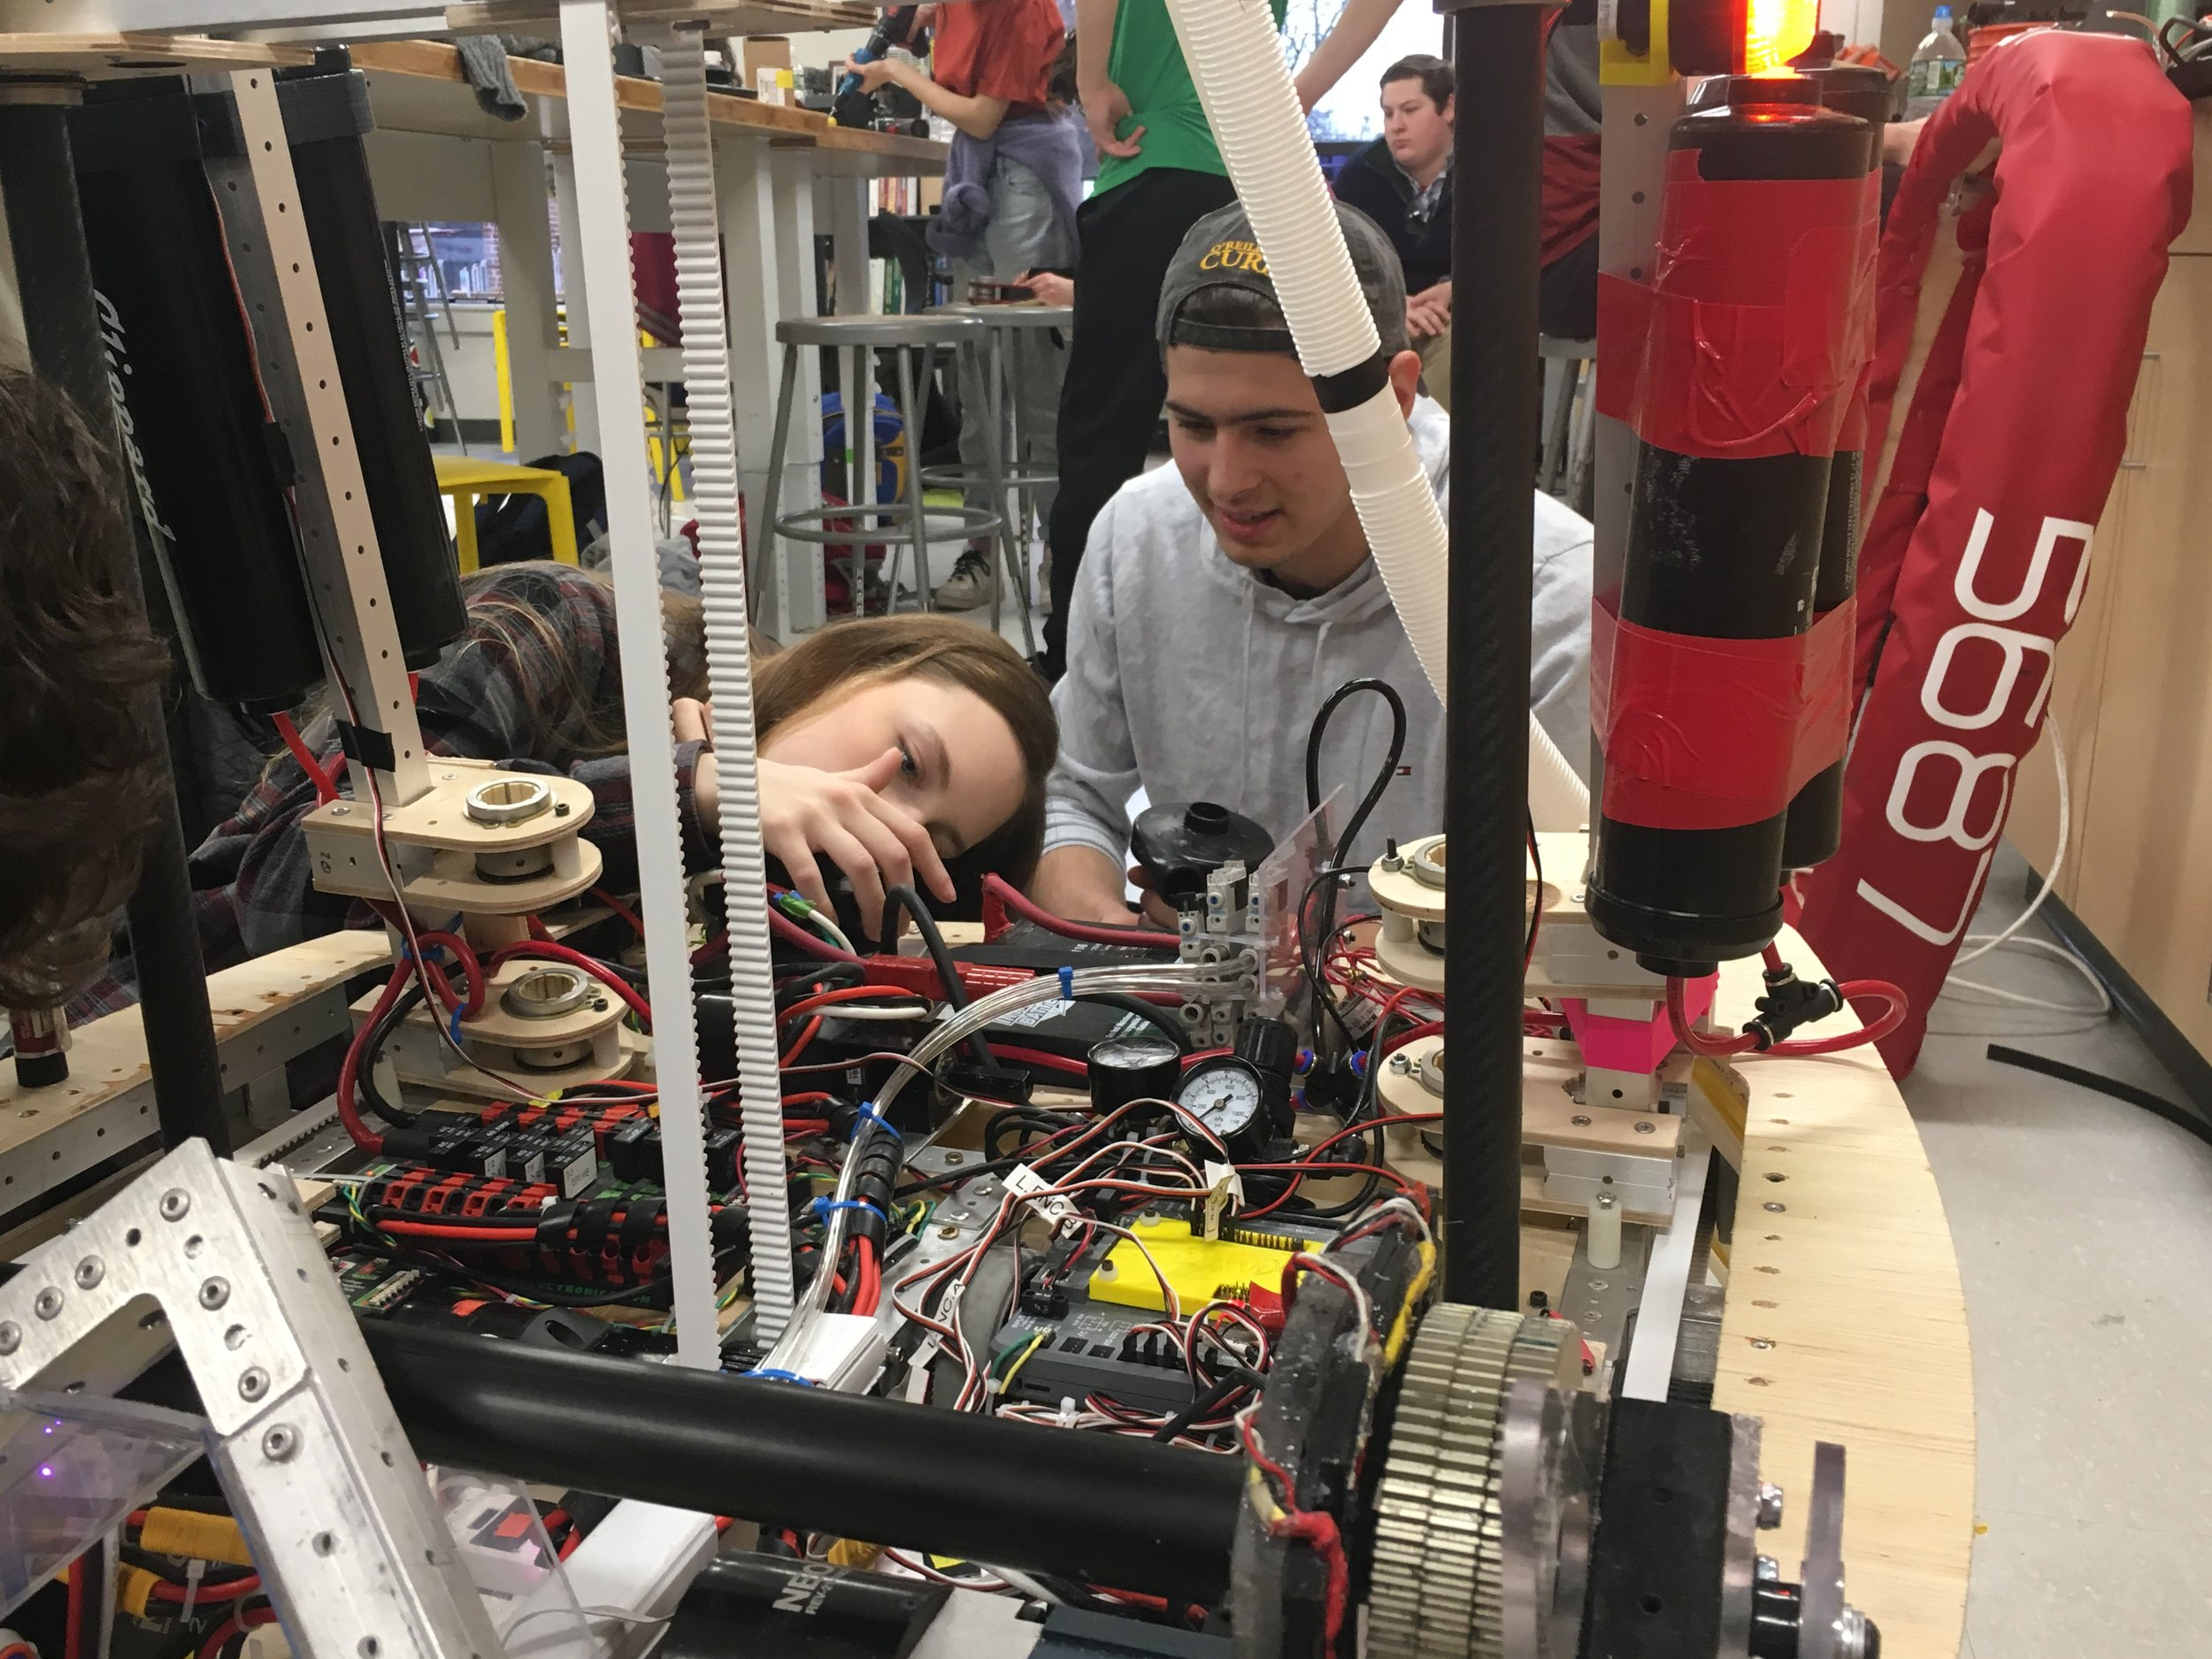 Maxine '19 and Connor '19 work on the robot during a Flex Friday.